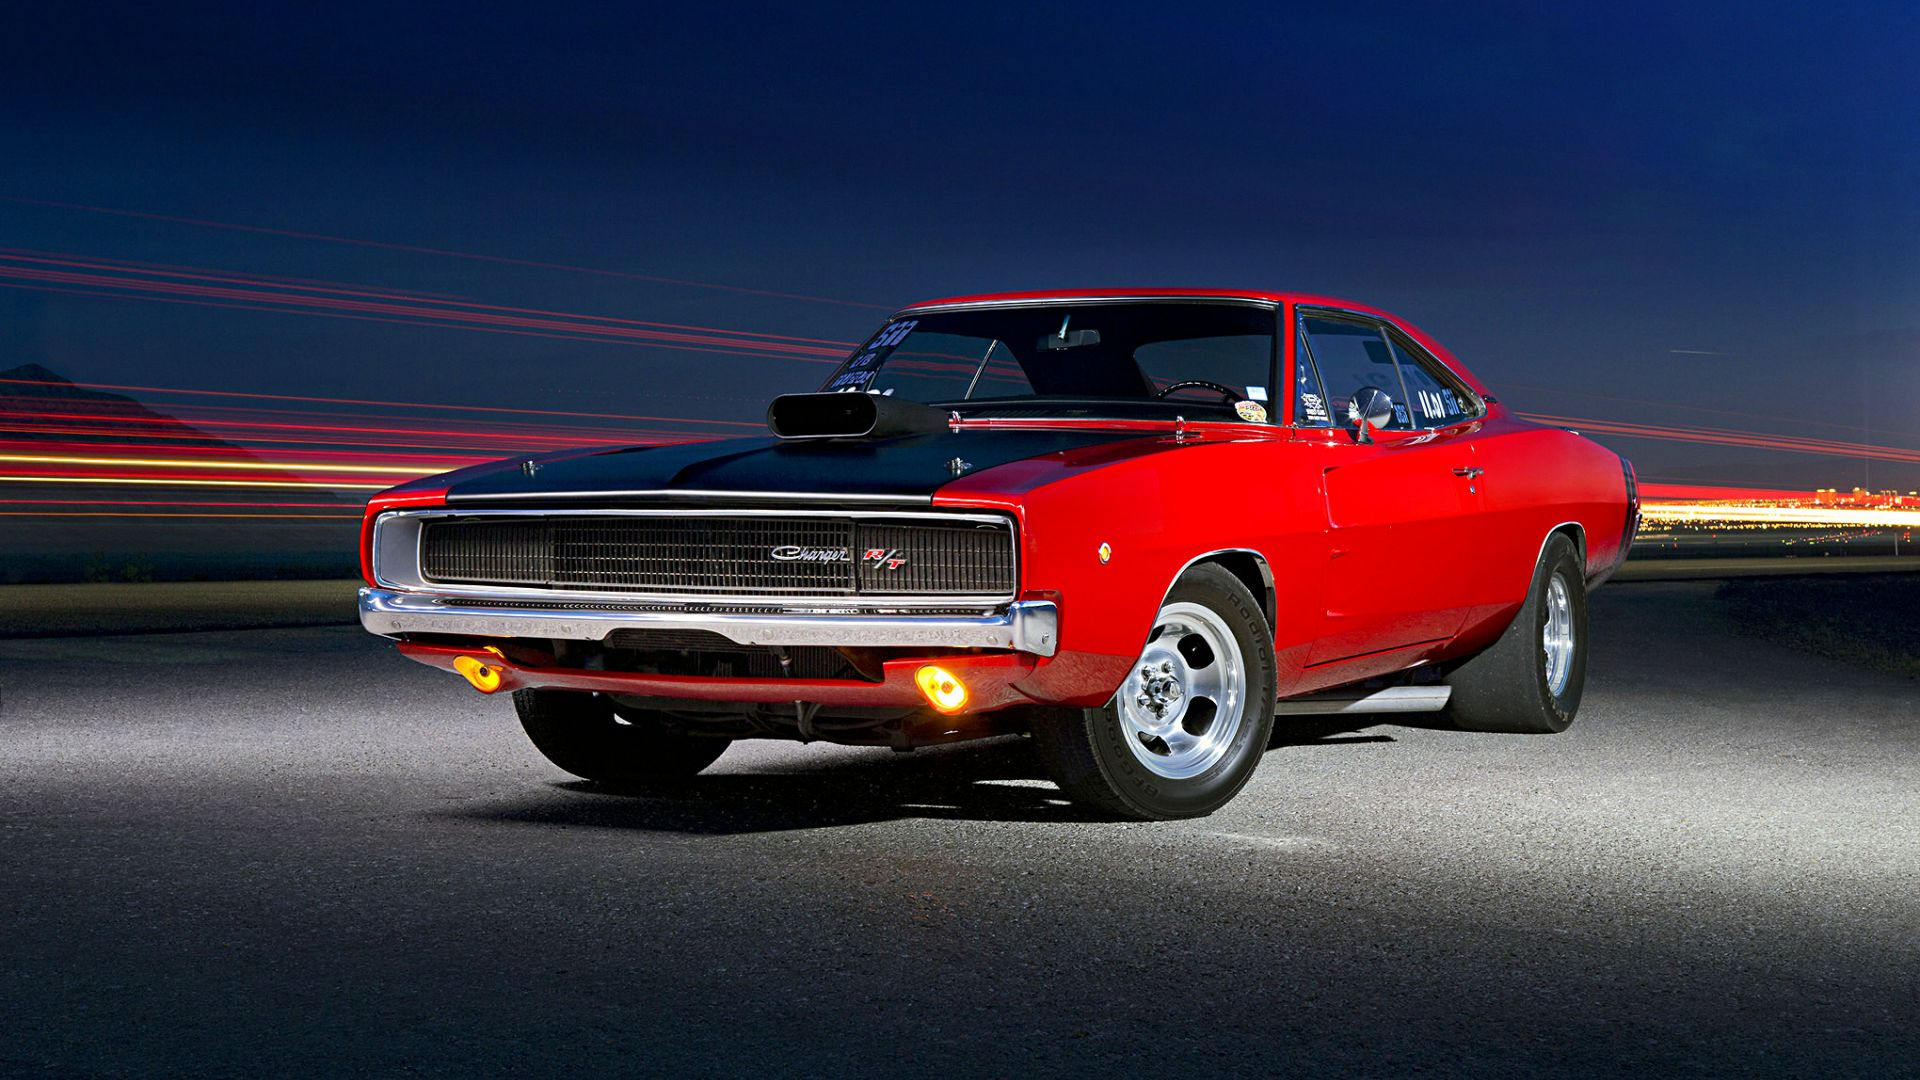 Desktop Wallpaper Classic Muscle Car Red Dodge Charger Hd